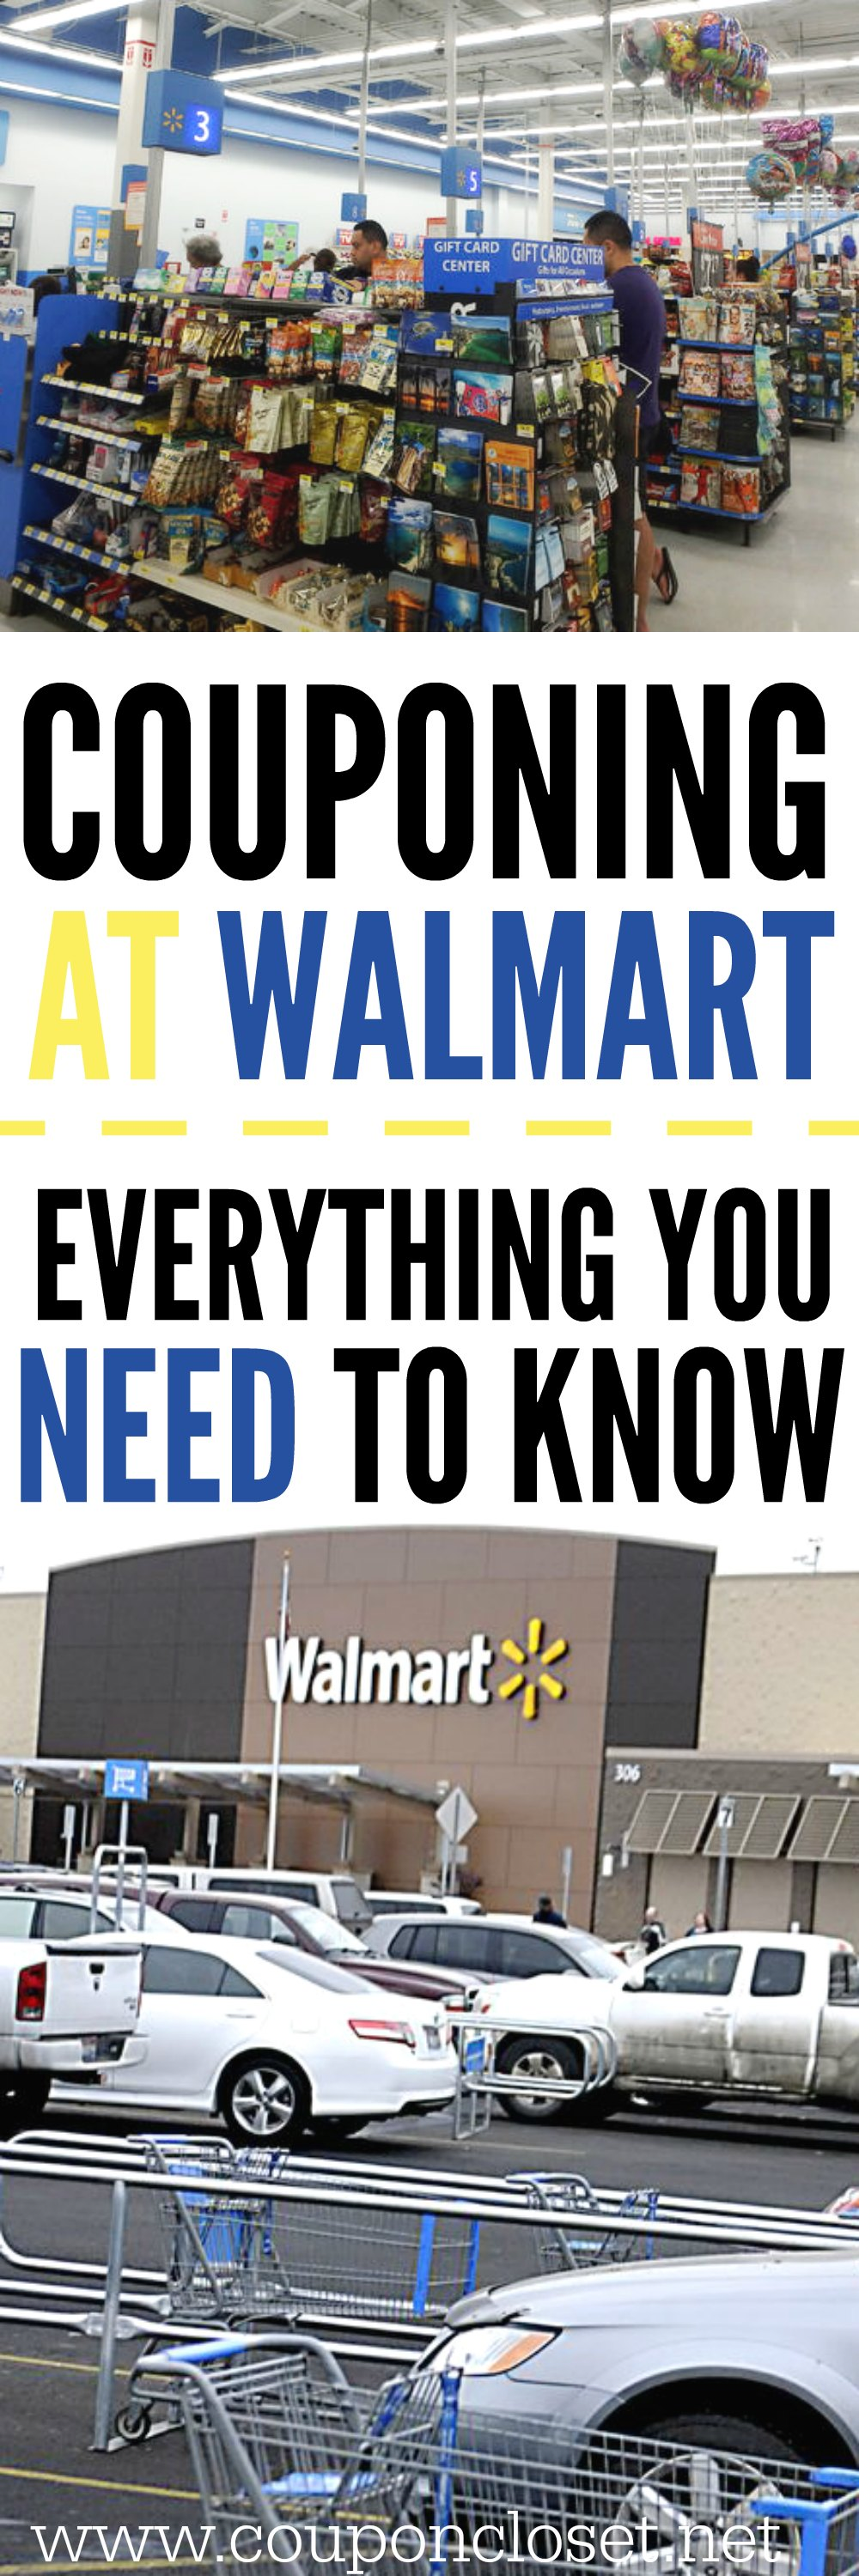 While on Walmart's online site, you can apply for a Walmart Credit Card, explore printable coupons, track your online orders, shop last-chance savings on clearance items, view local deals, purchase gift cards, as well as submit receipts to find added savings through Walmart Savings Catcher/5(11).